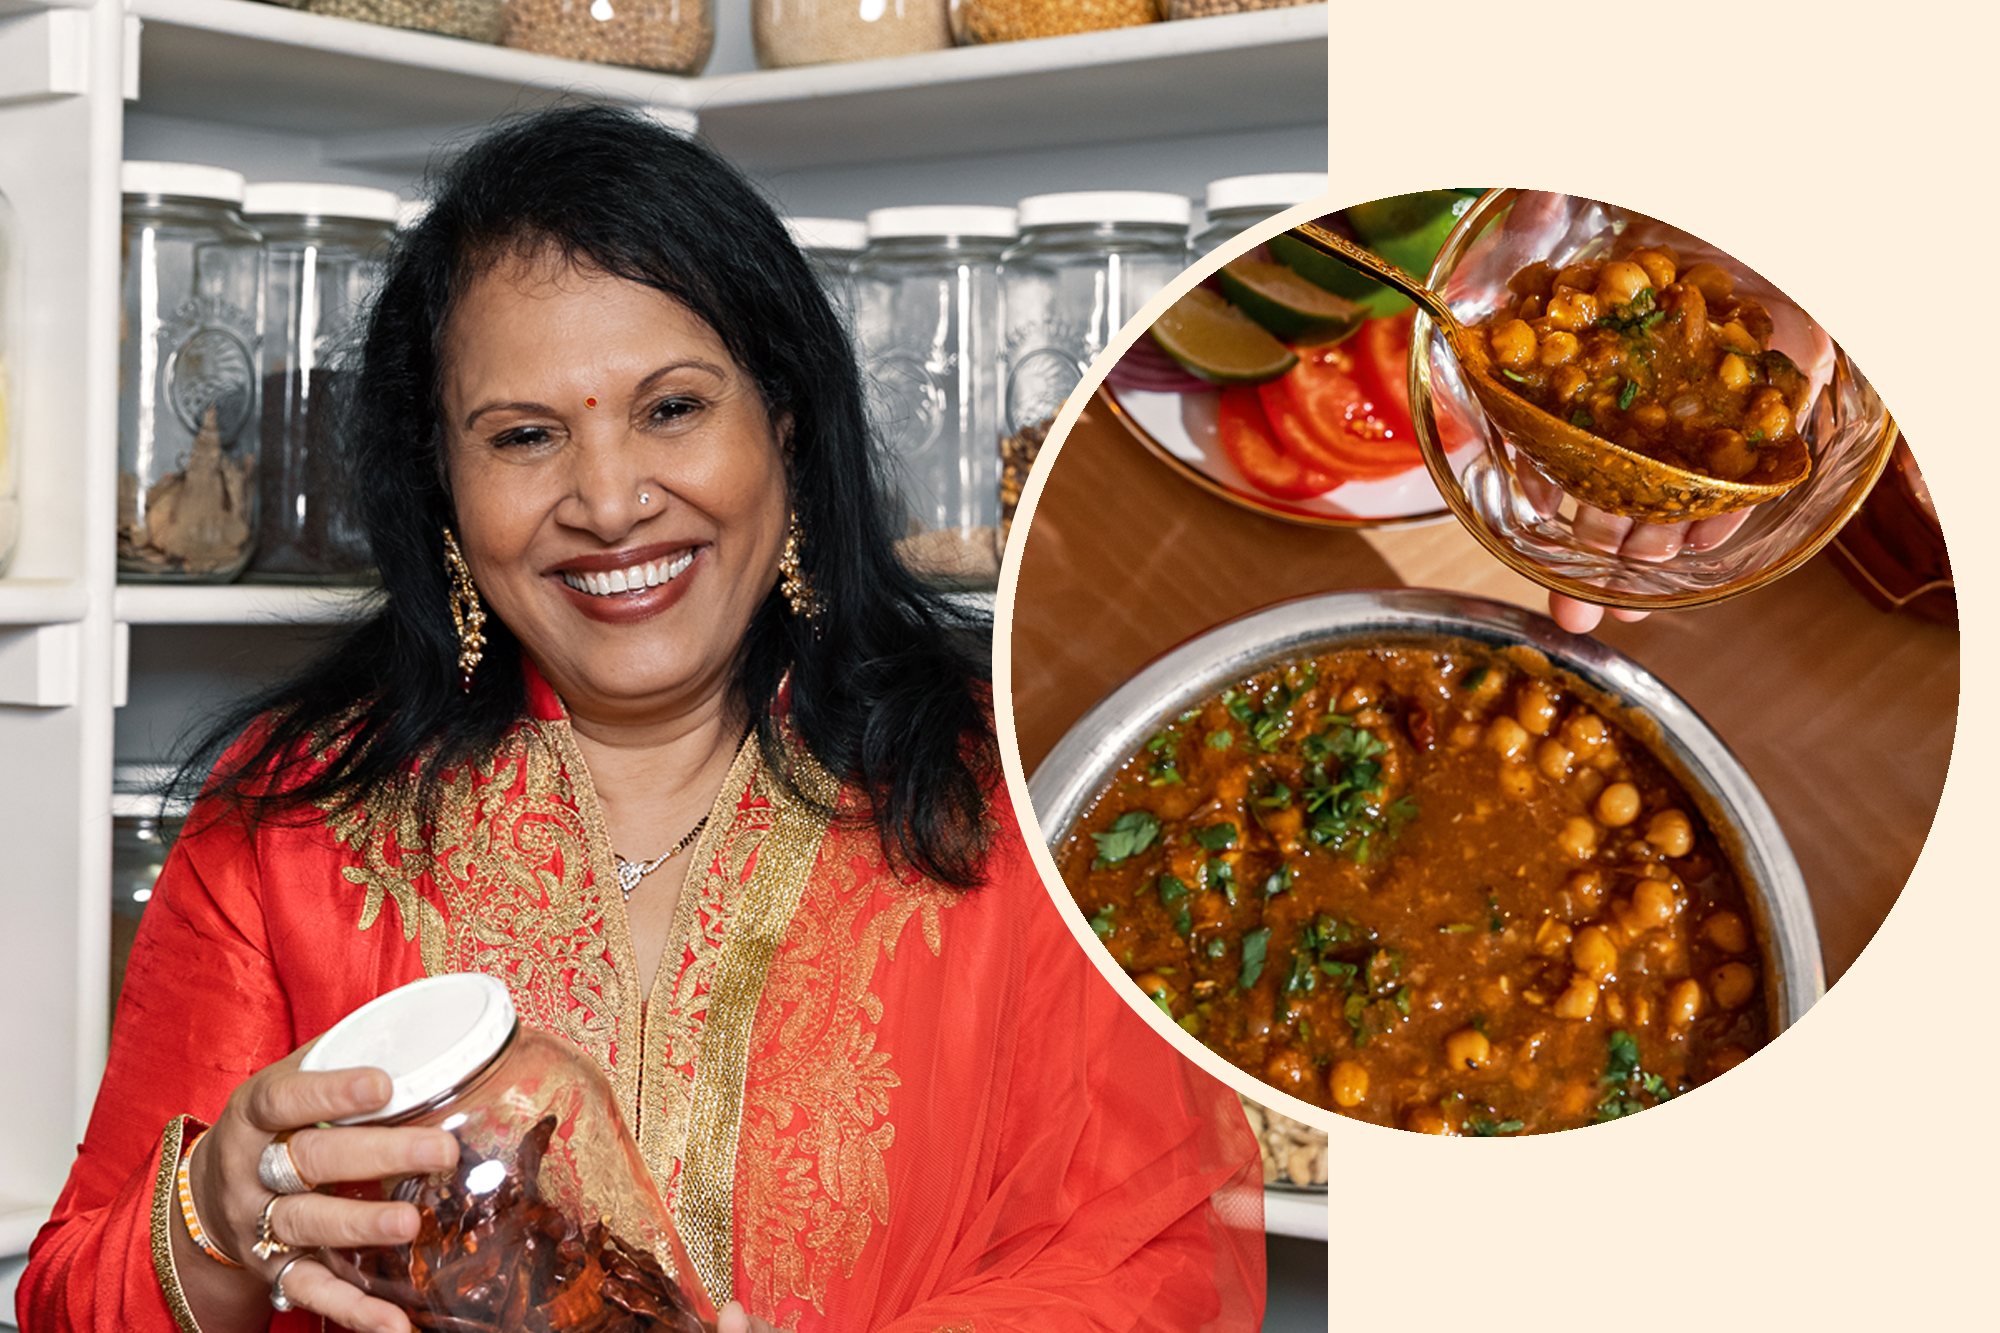 Auntie Hina Mody and her Chana Masala